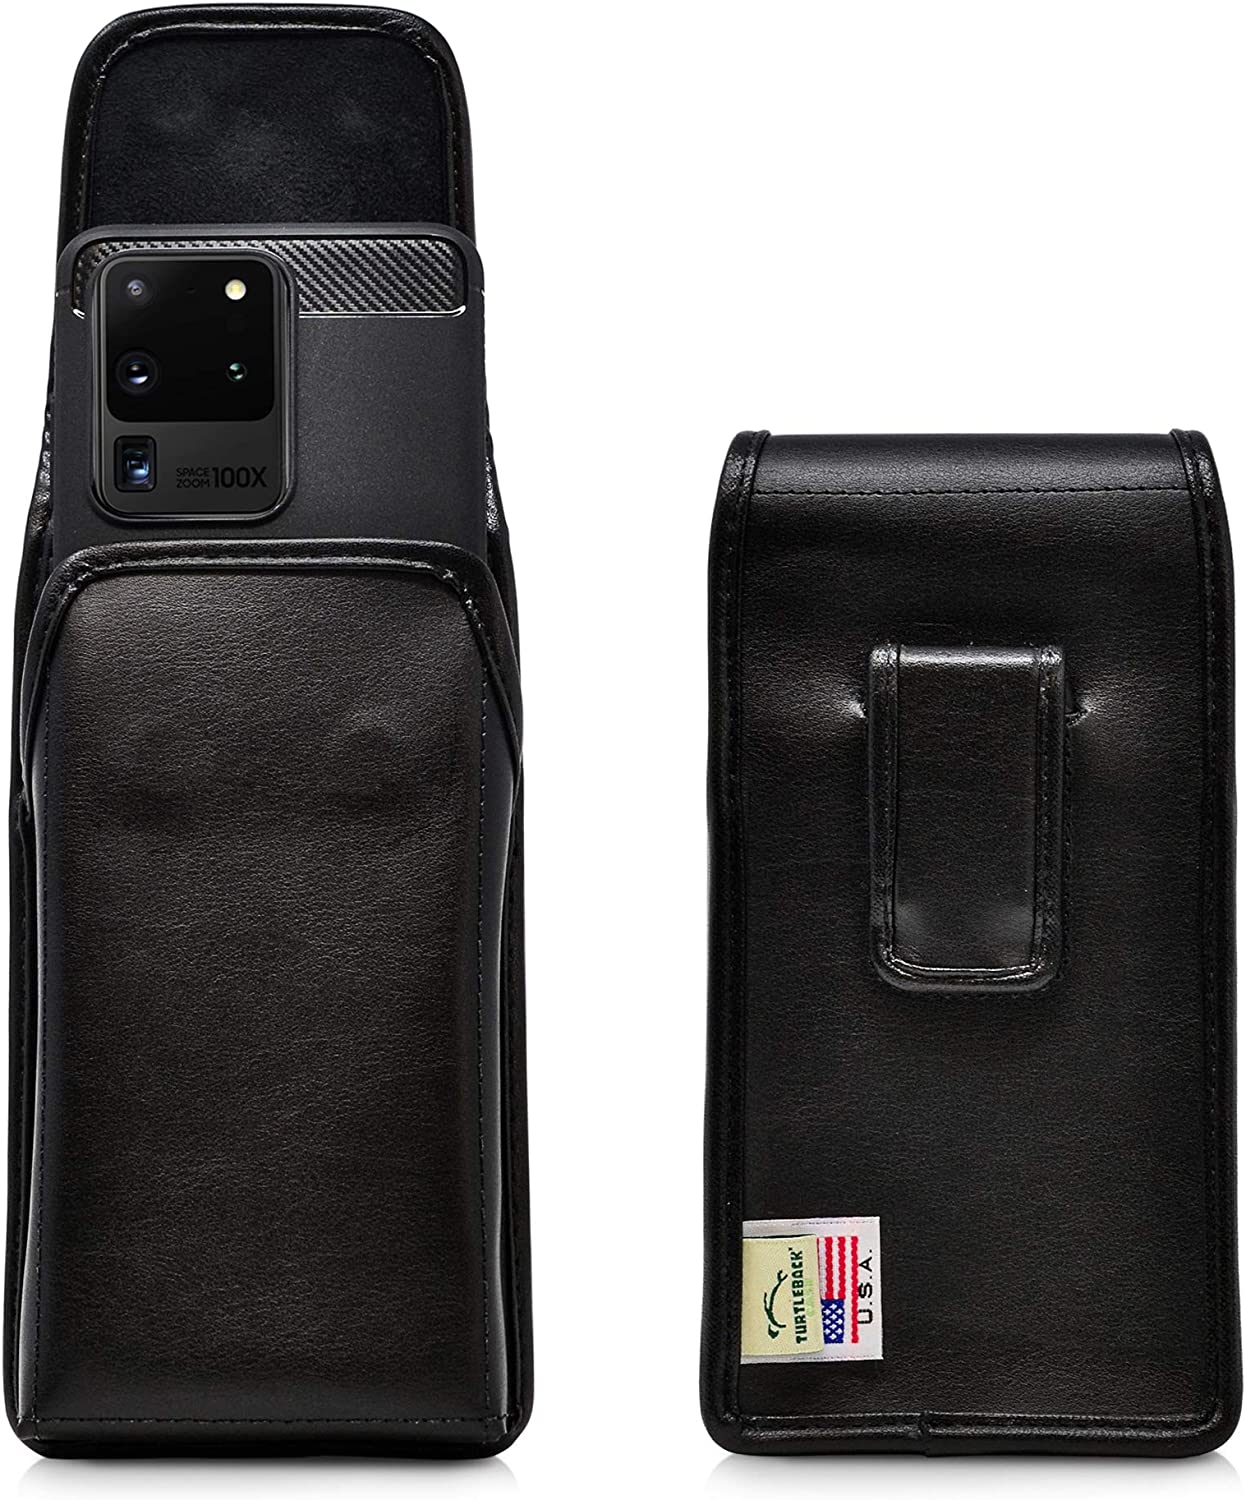 Turtleback Holster Designed for Galaxy S20 S21 Ultra (2020) Vertical Belt Case Black Leather Pouch with Executive Belt Clip, Made in USA